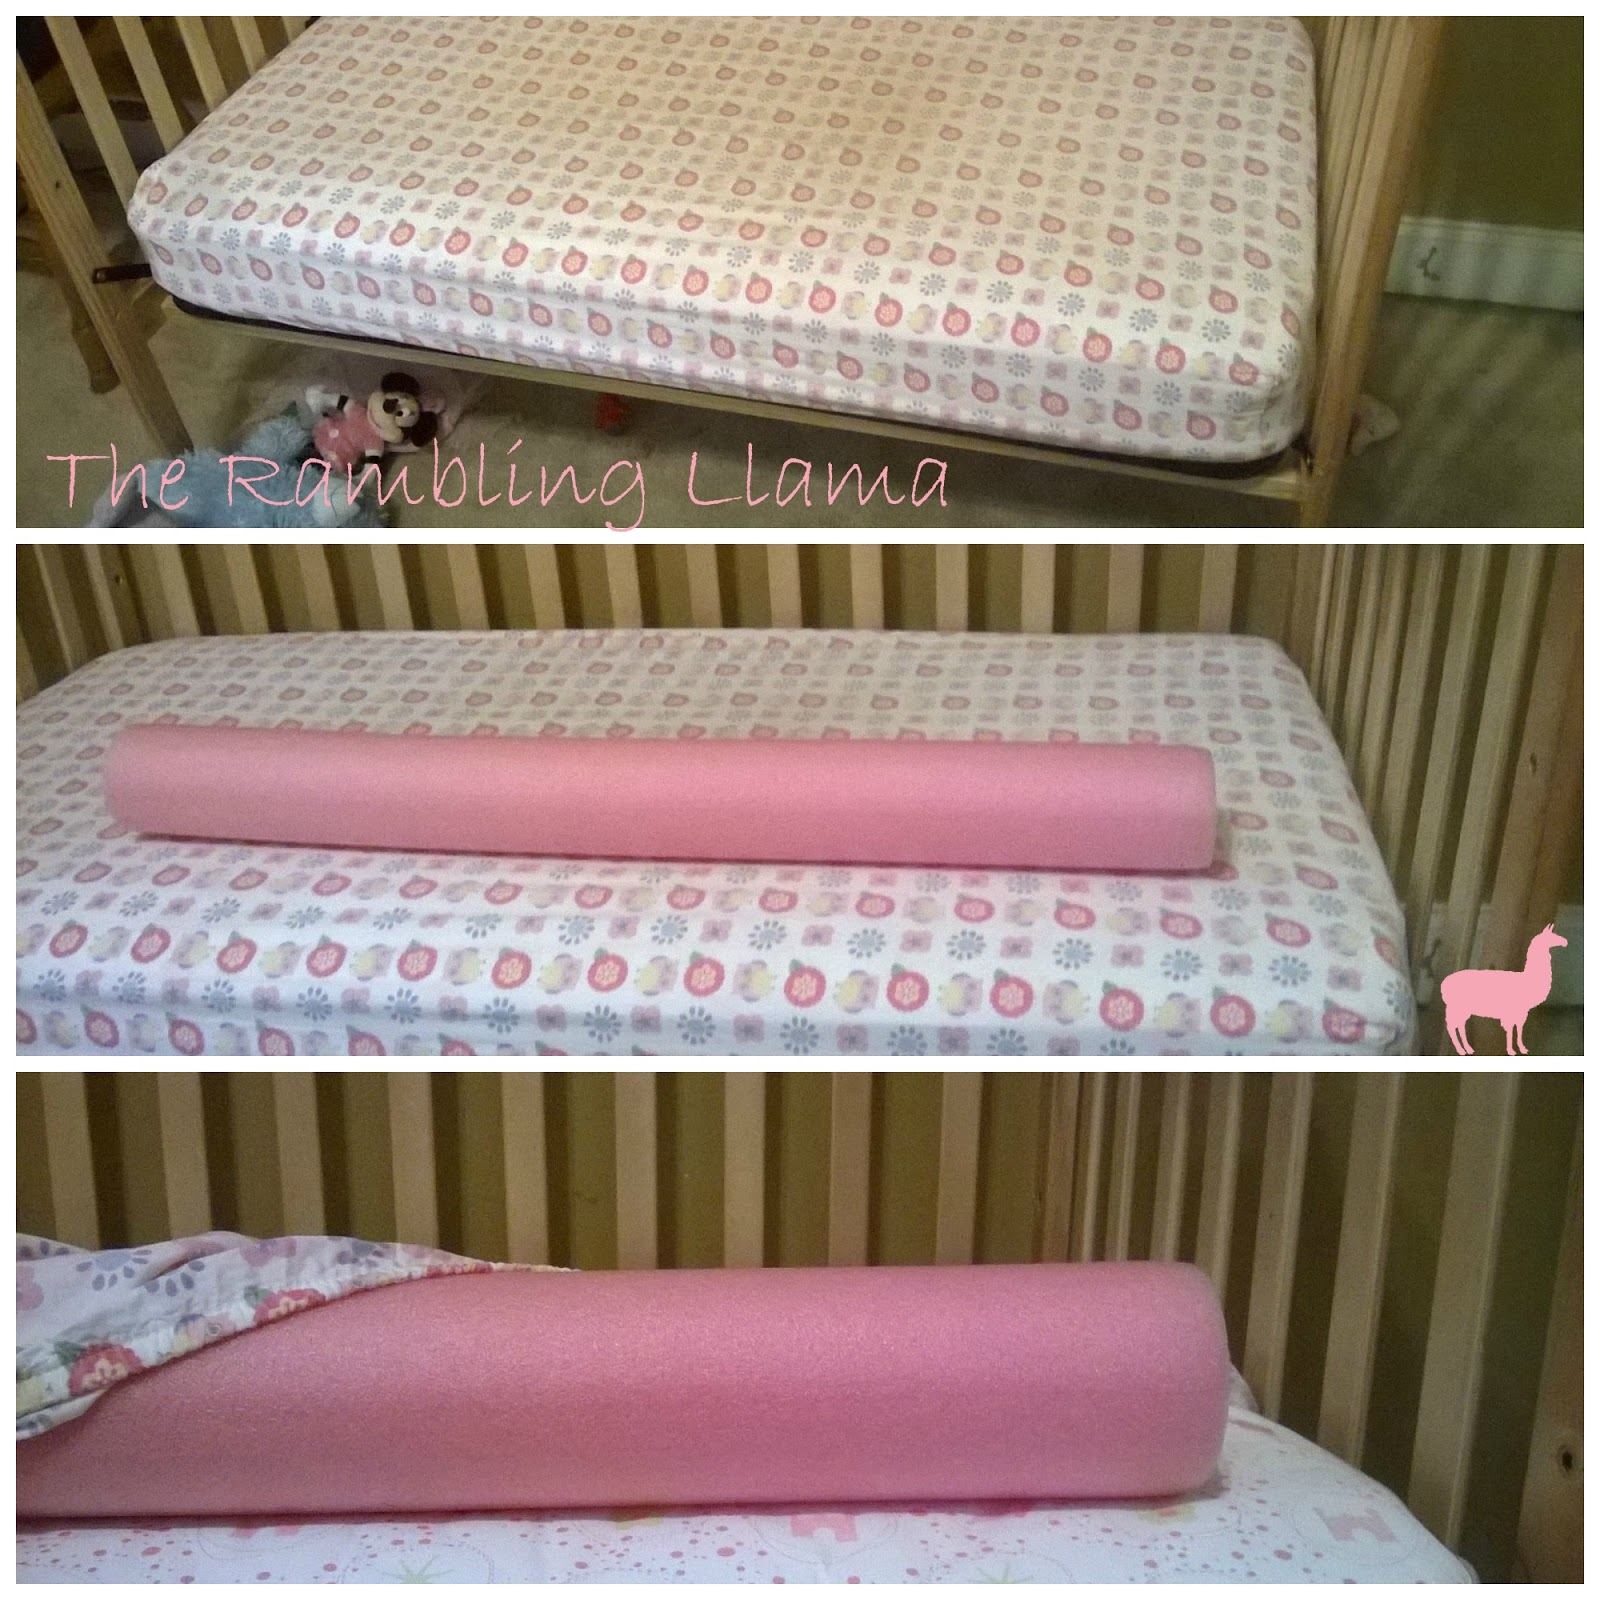 The Best Ideas for Diy Bed Rails for toddler - Home ...